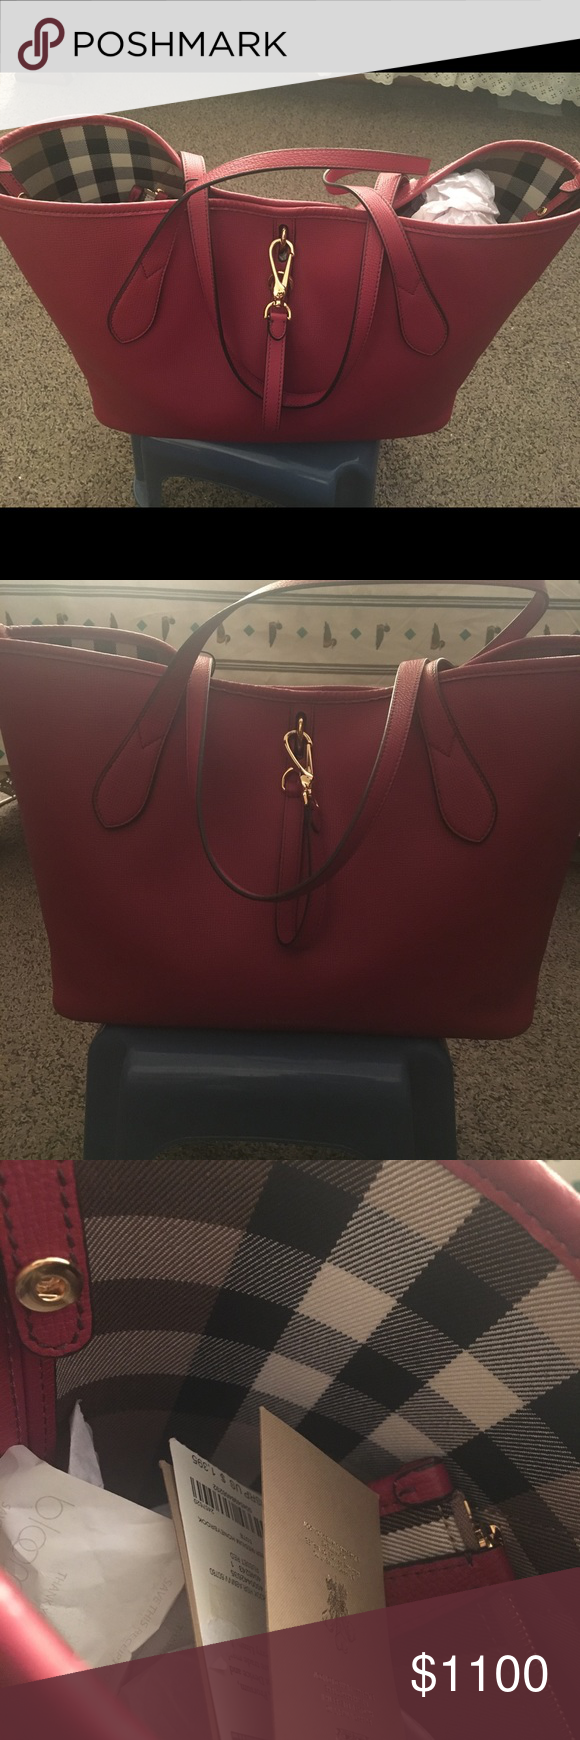 NWT Burberry Honeybrook Derby Medium Tote Never worn or used Burberry s  roomy c3925bc72e0aa